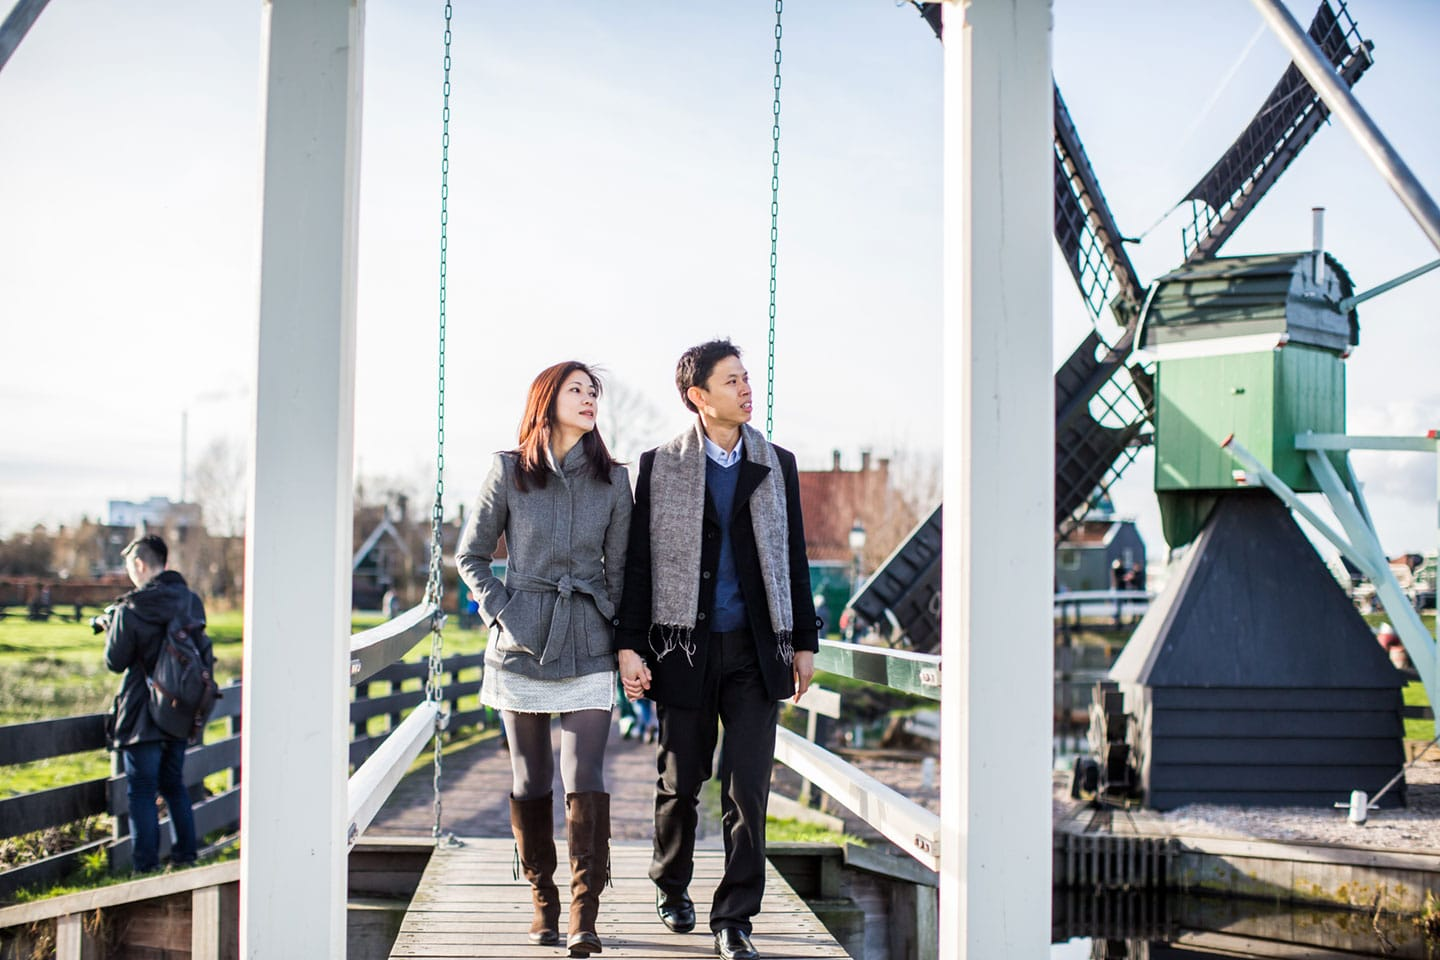 05-Zaanse-Schans-Amsterdam-windmills-prewedding-shoot